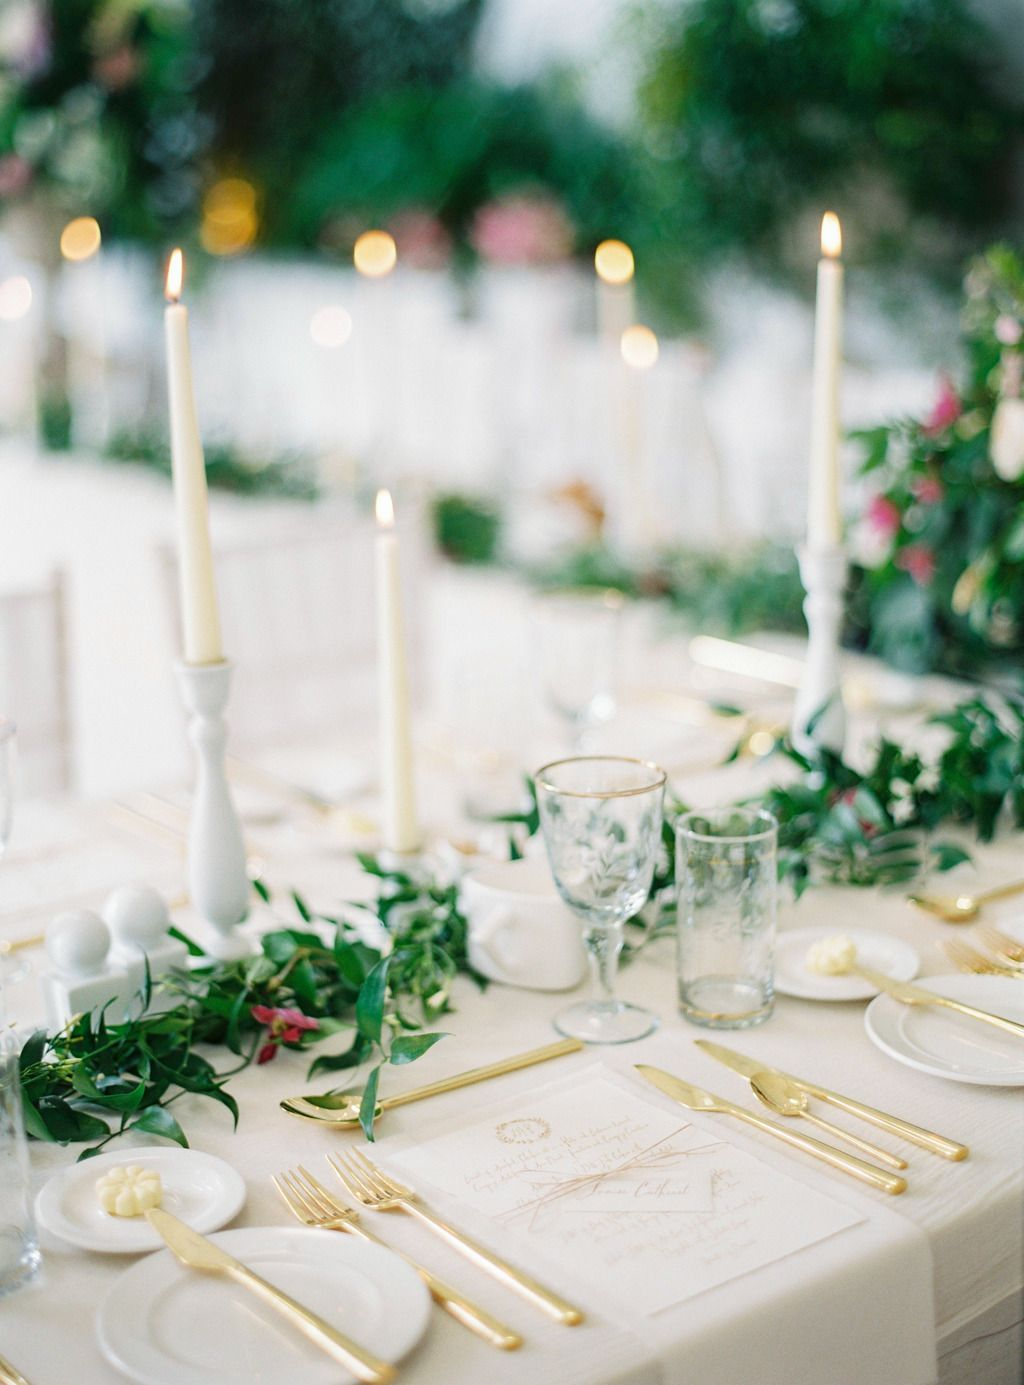 Top Wedding Trends of 2014 | Wedding trends, Tablescapes and ...